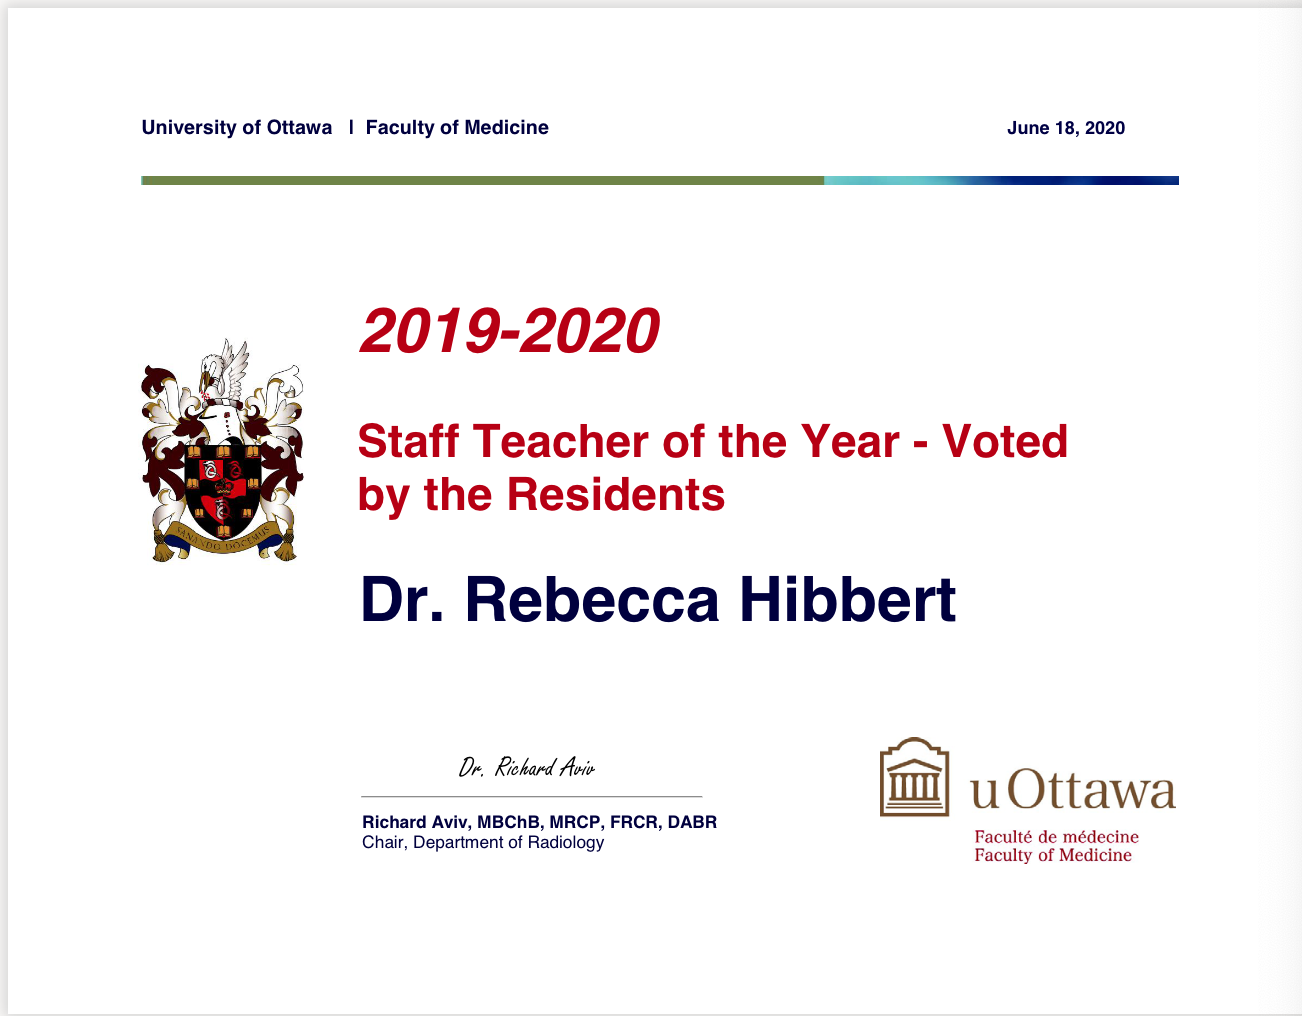 2019-2020 Staff Teacher of the Year - Voted by the Residents. Winner is Dr. Rebecca Hibbert